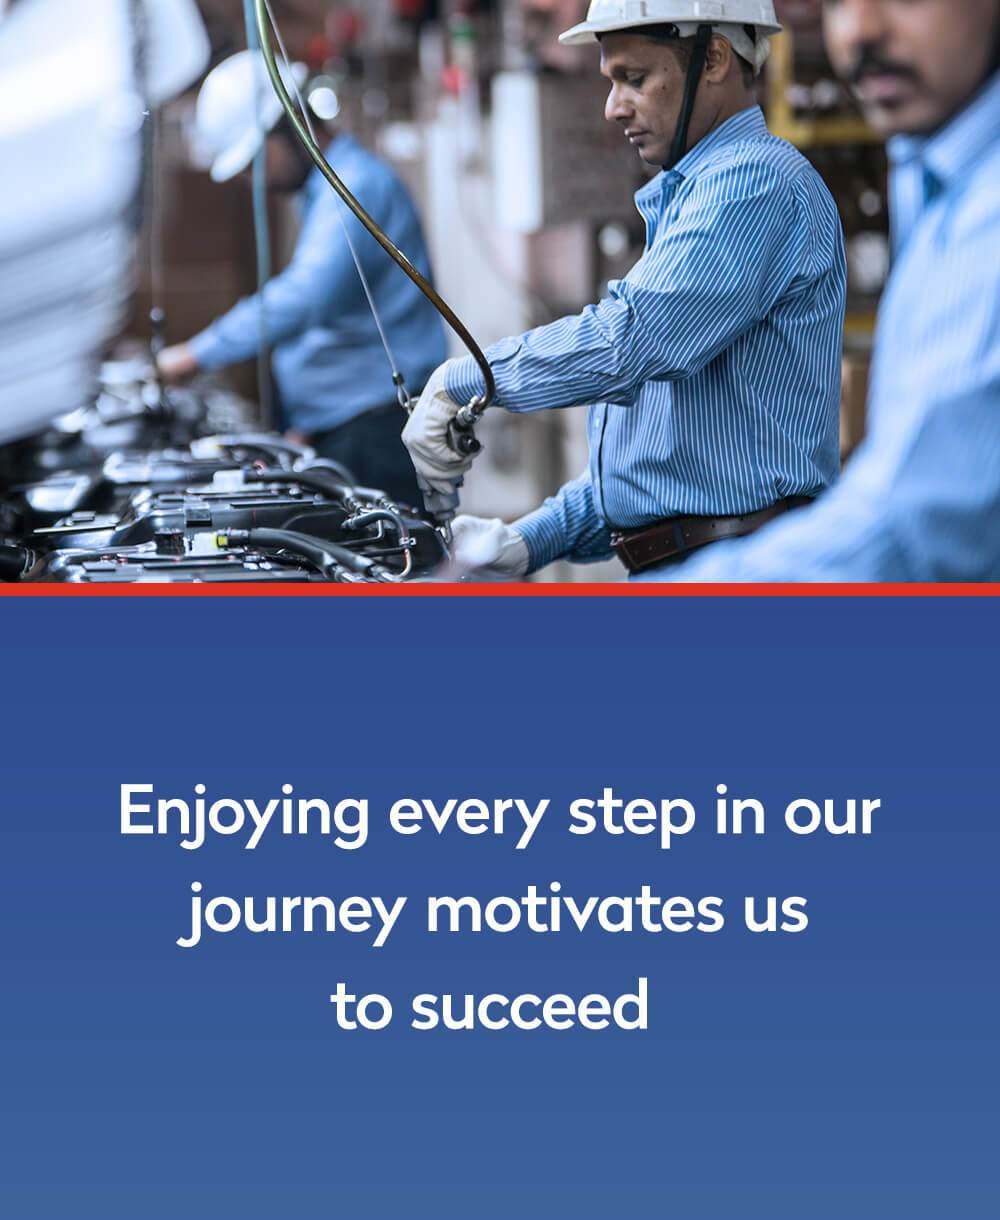 Enjoying every step in our journey motivates us to succeed